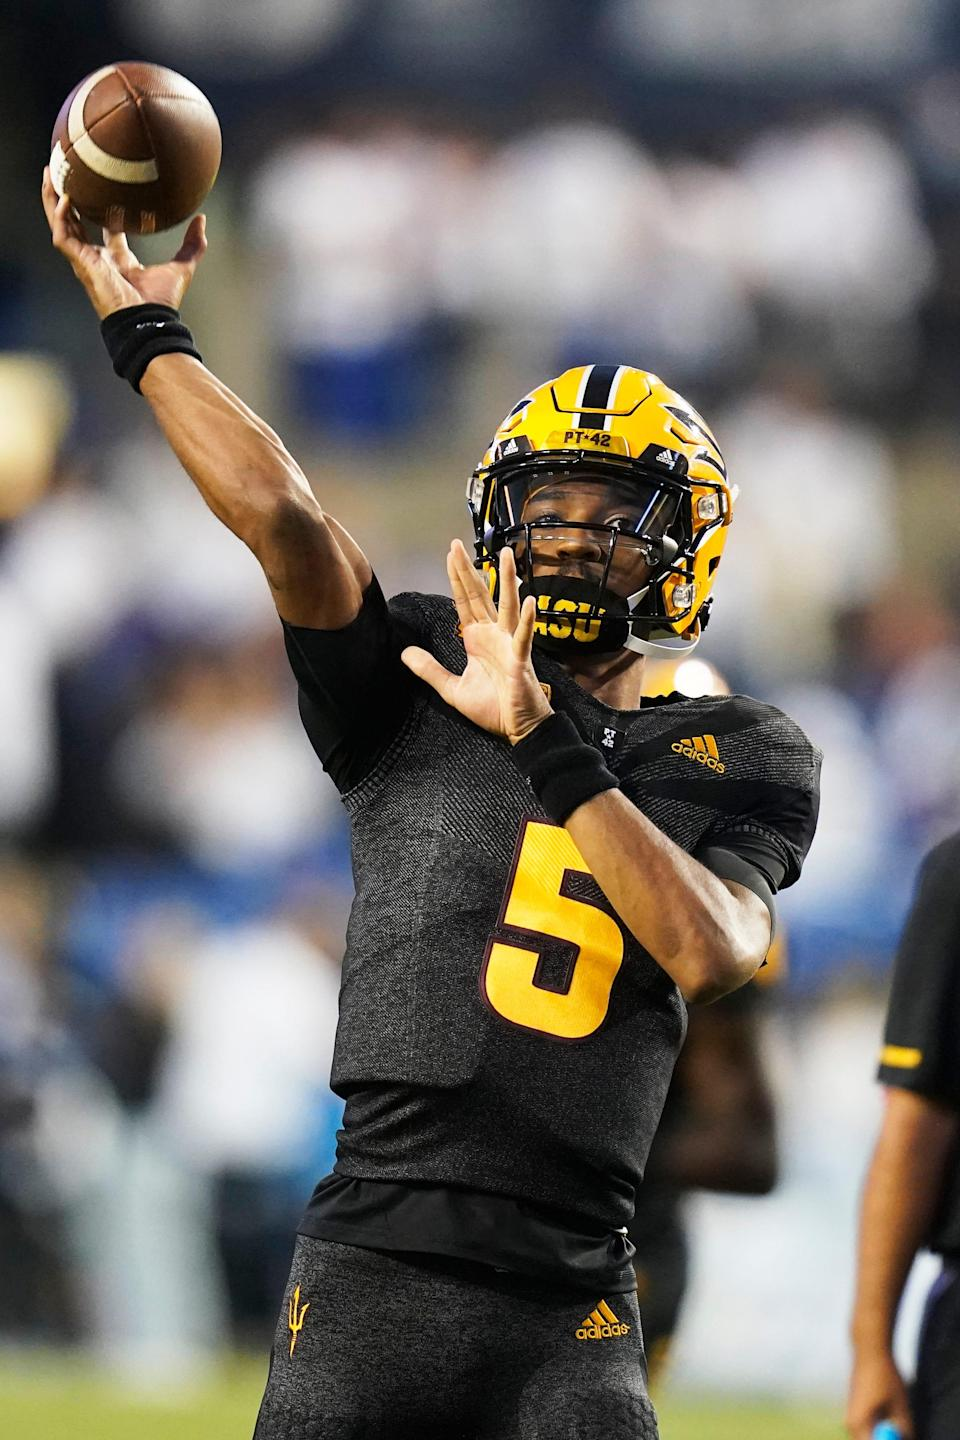 Arizona State quarterback Jayden Daniels warms up for the team's NCAA college football game against BYU on Saturday, Sept. 18, 2021, in Provo, Utah. (AP Photo/Rick Bowmer)